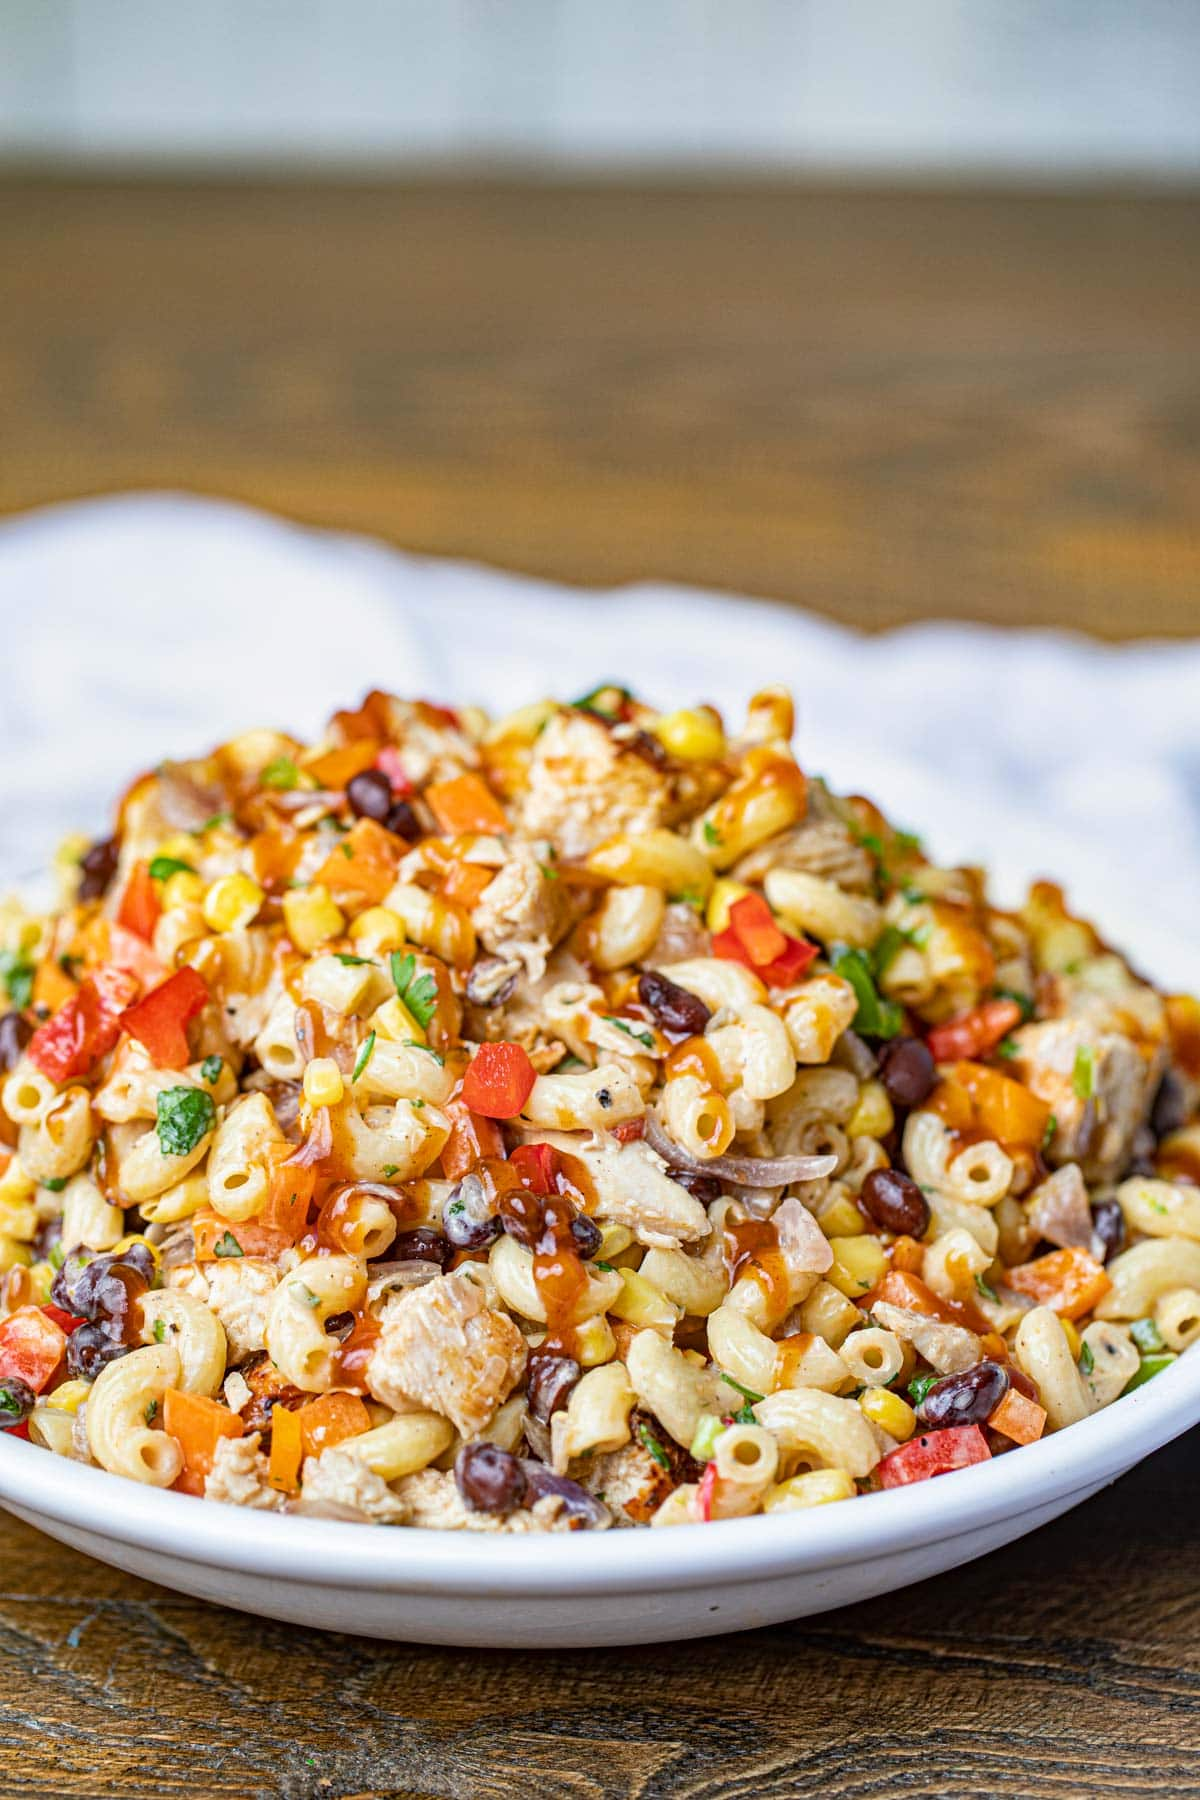 Bowl of Pasta Salad with Chicken, Corn and Beans